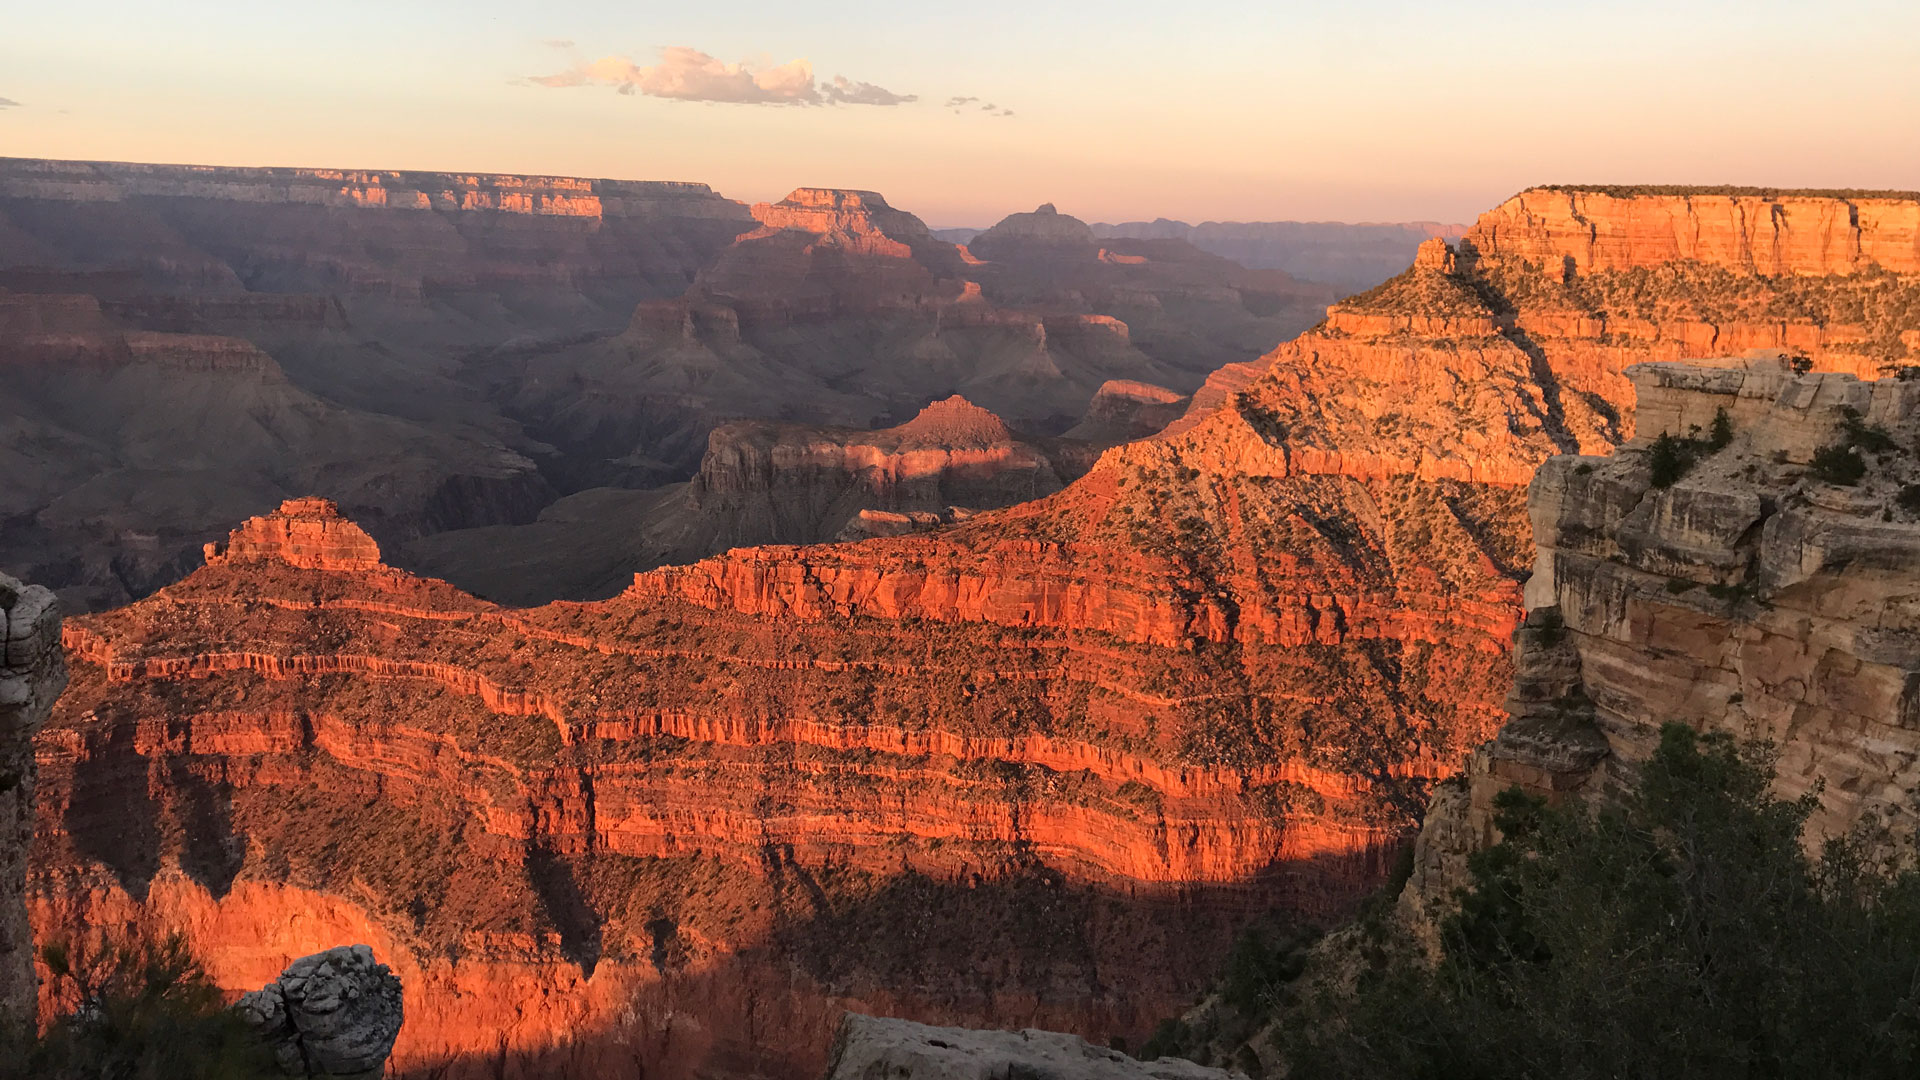 Grand Canyon National Park is one of the most visited national parks in the nation.